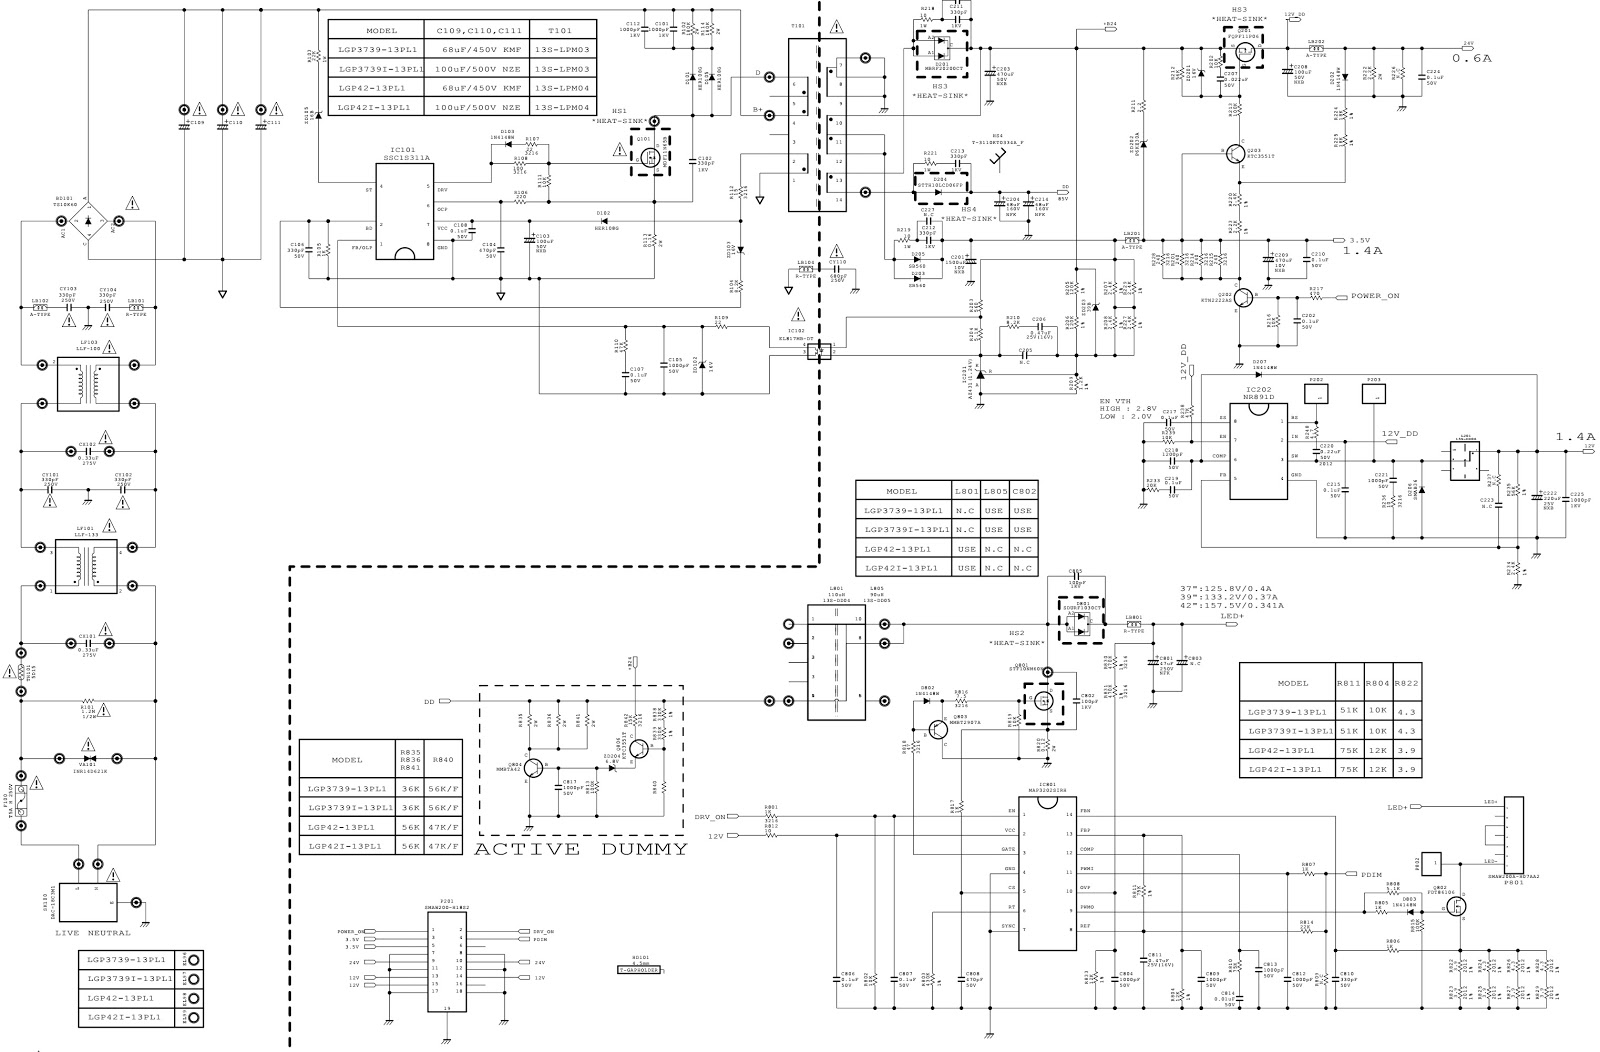 Lgp3739 13pl1 Part Code Eay62810401 Eax64905301 Power Supply Control Panel Circuit Diagram And Parts List For Sharp Microwaveparts Click On The Schematic To Zoom In